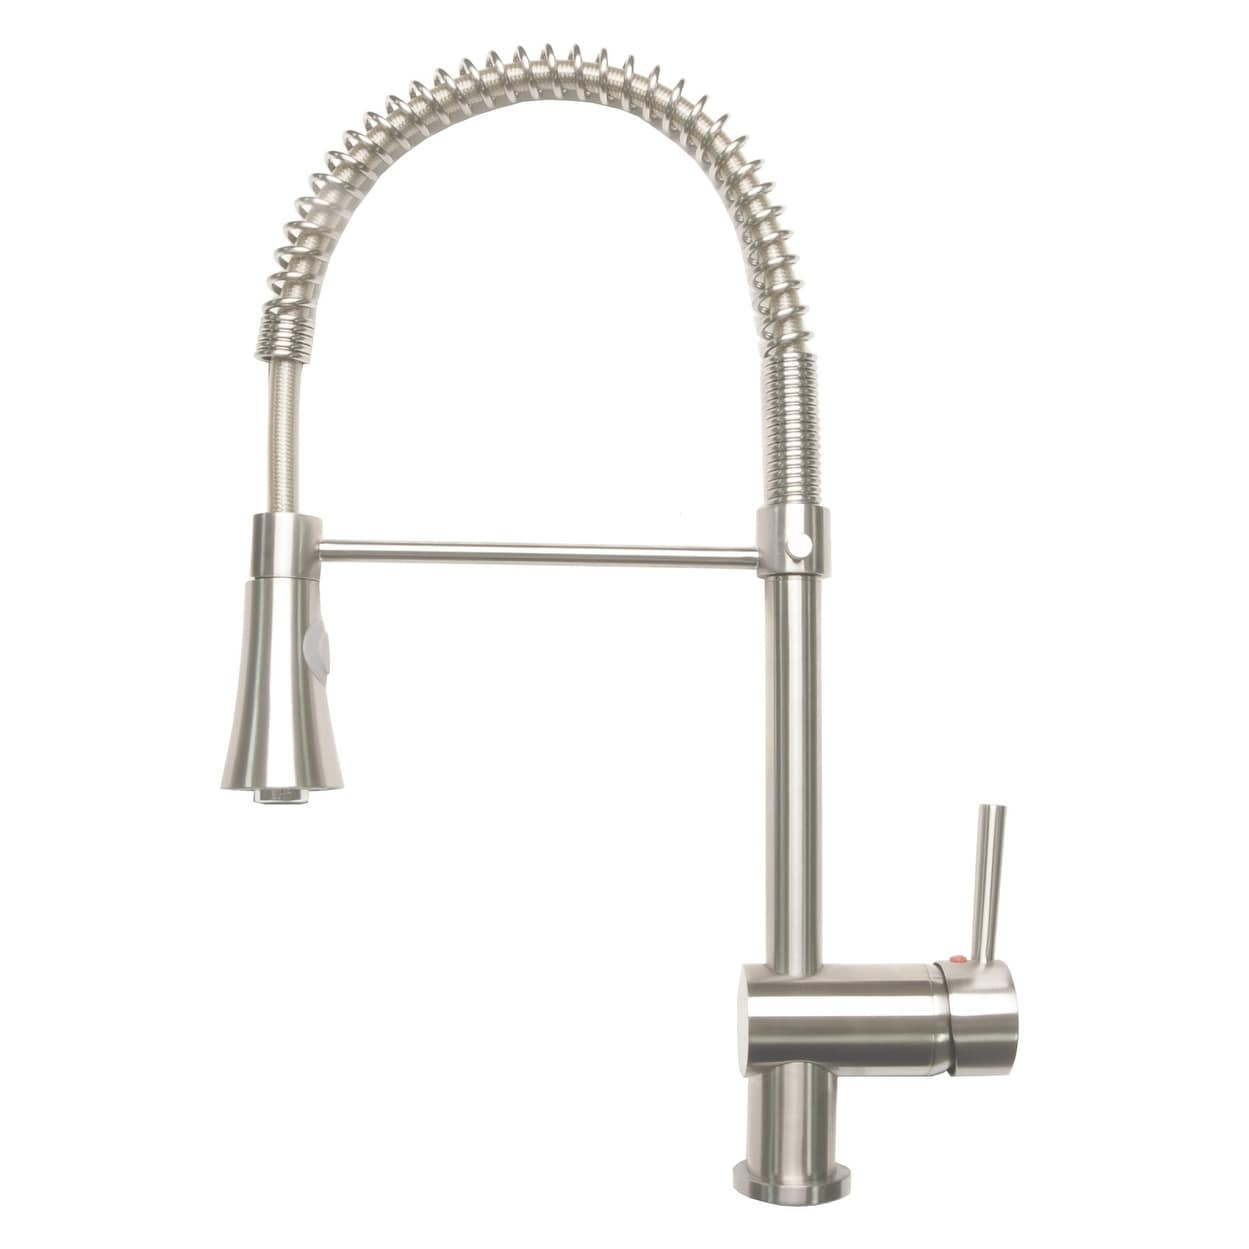 semi american standard kitchen faucet handle faucets kitchens pro professional quince coiled